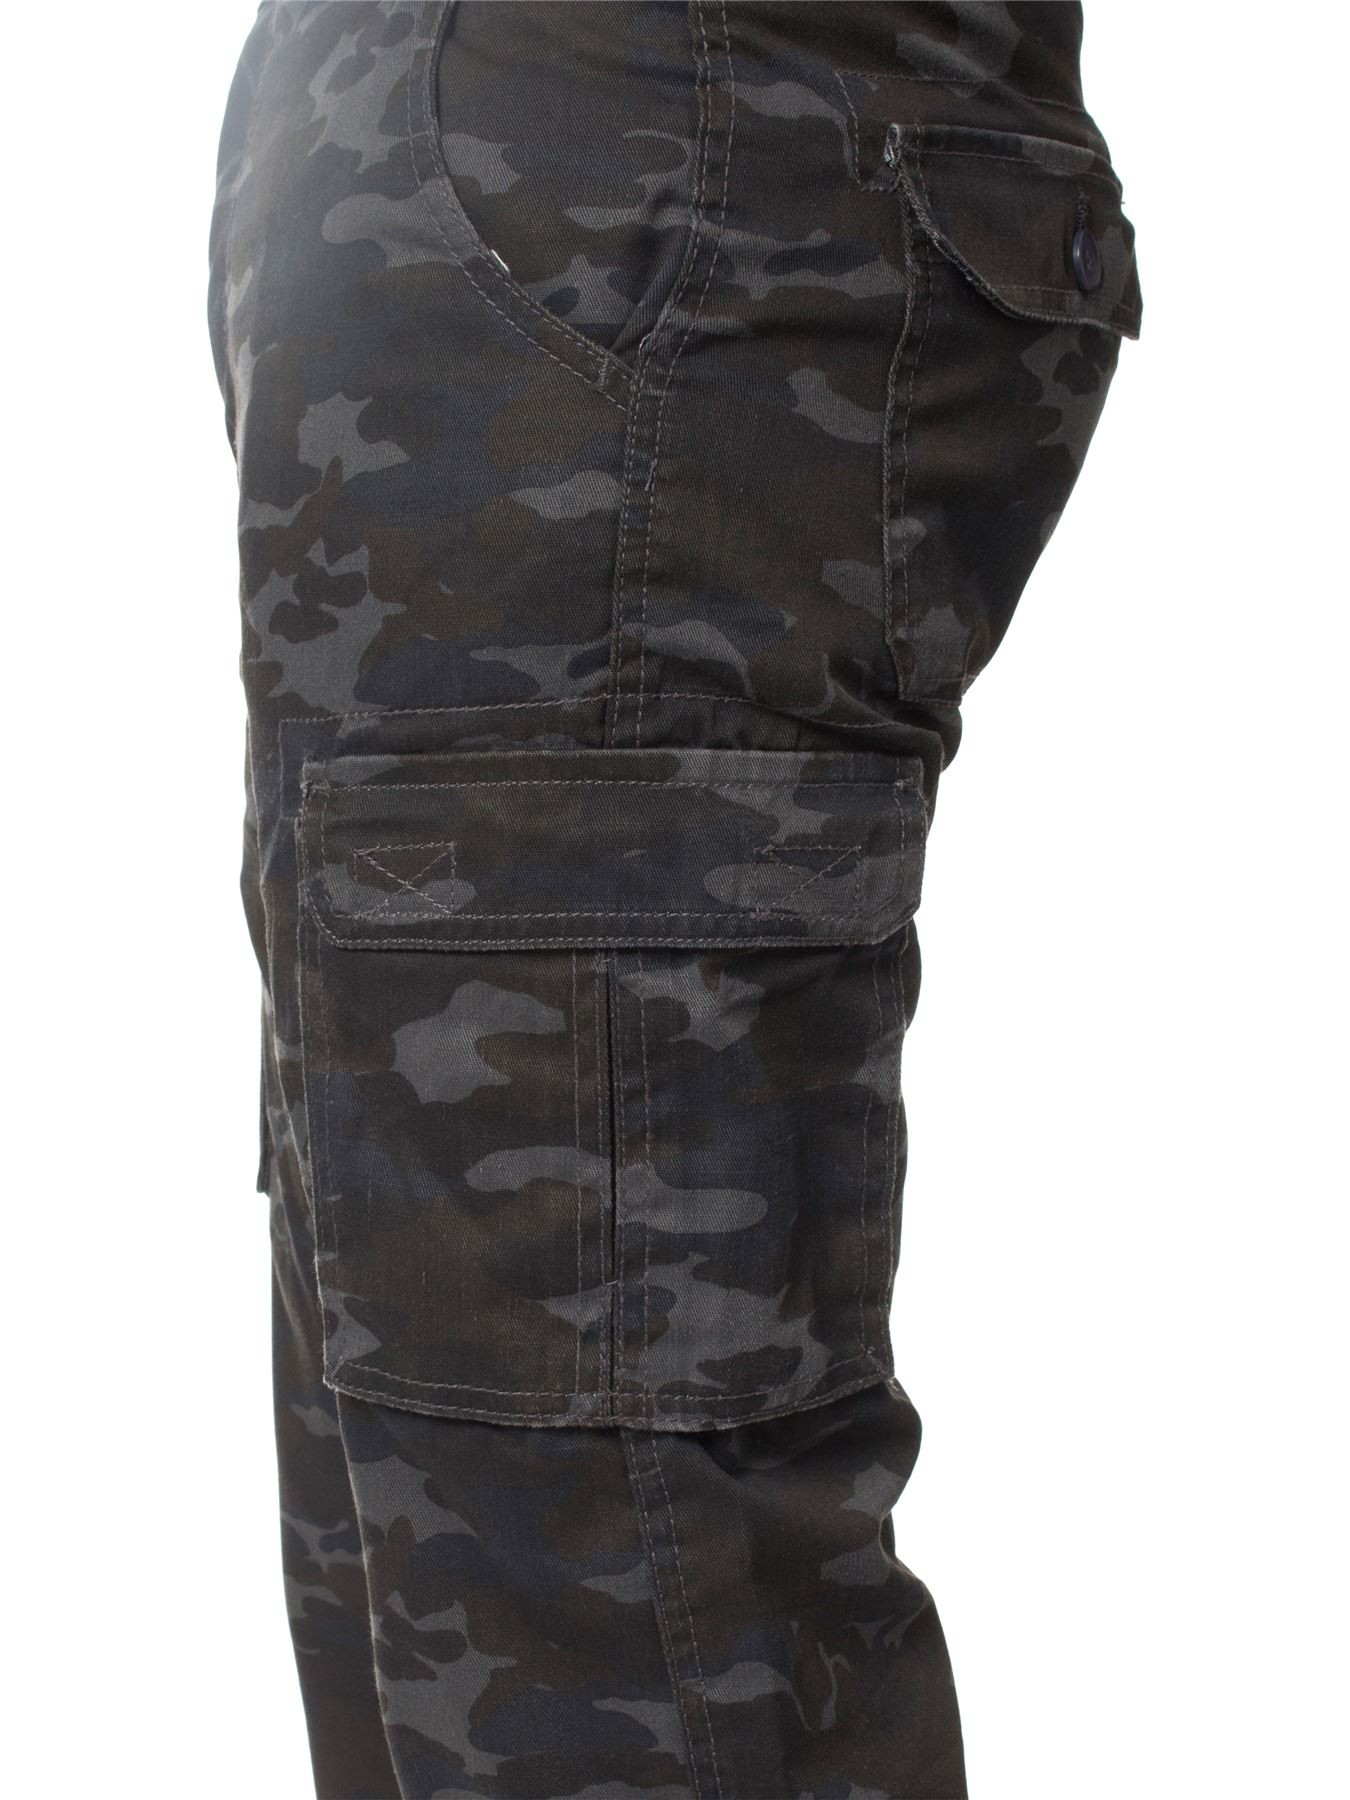 Kruze-Mens-Military-Combat-Trousers-Camouflage-Cargo-Camo-Army-Casual-Work-Pants thumbnail 36